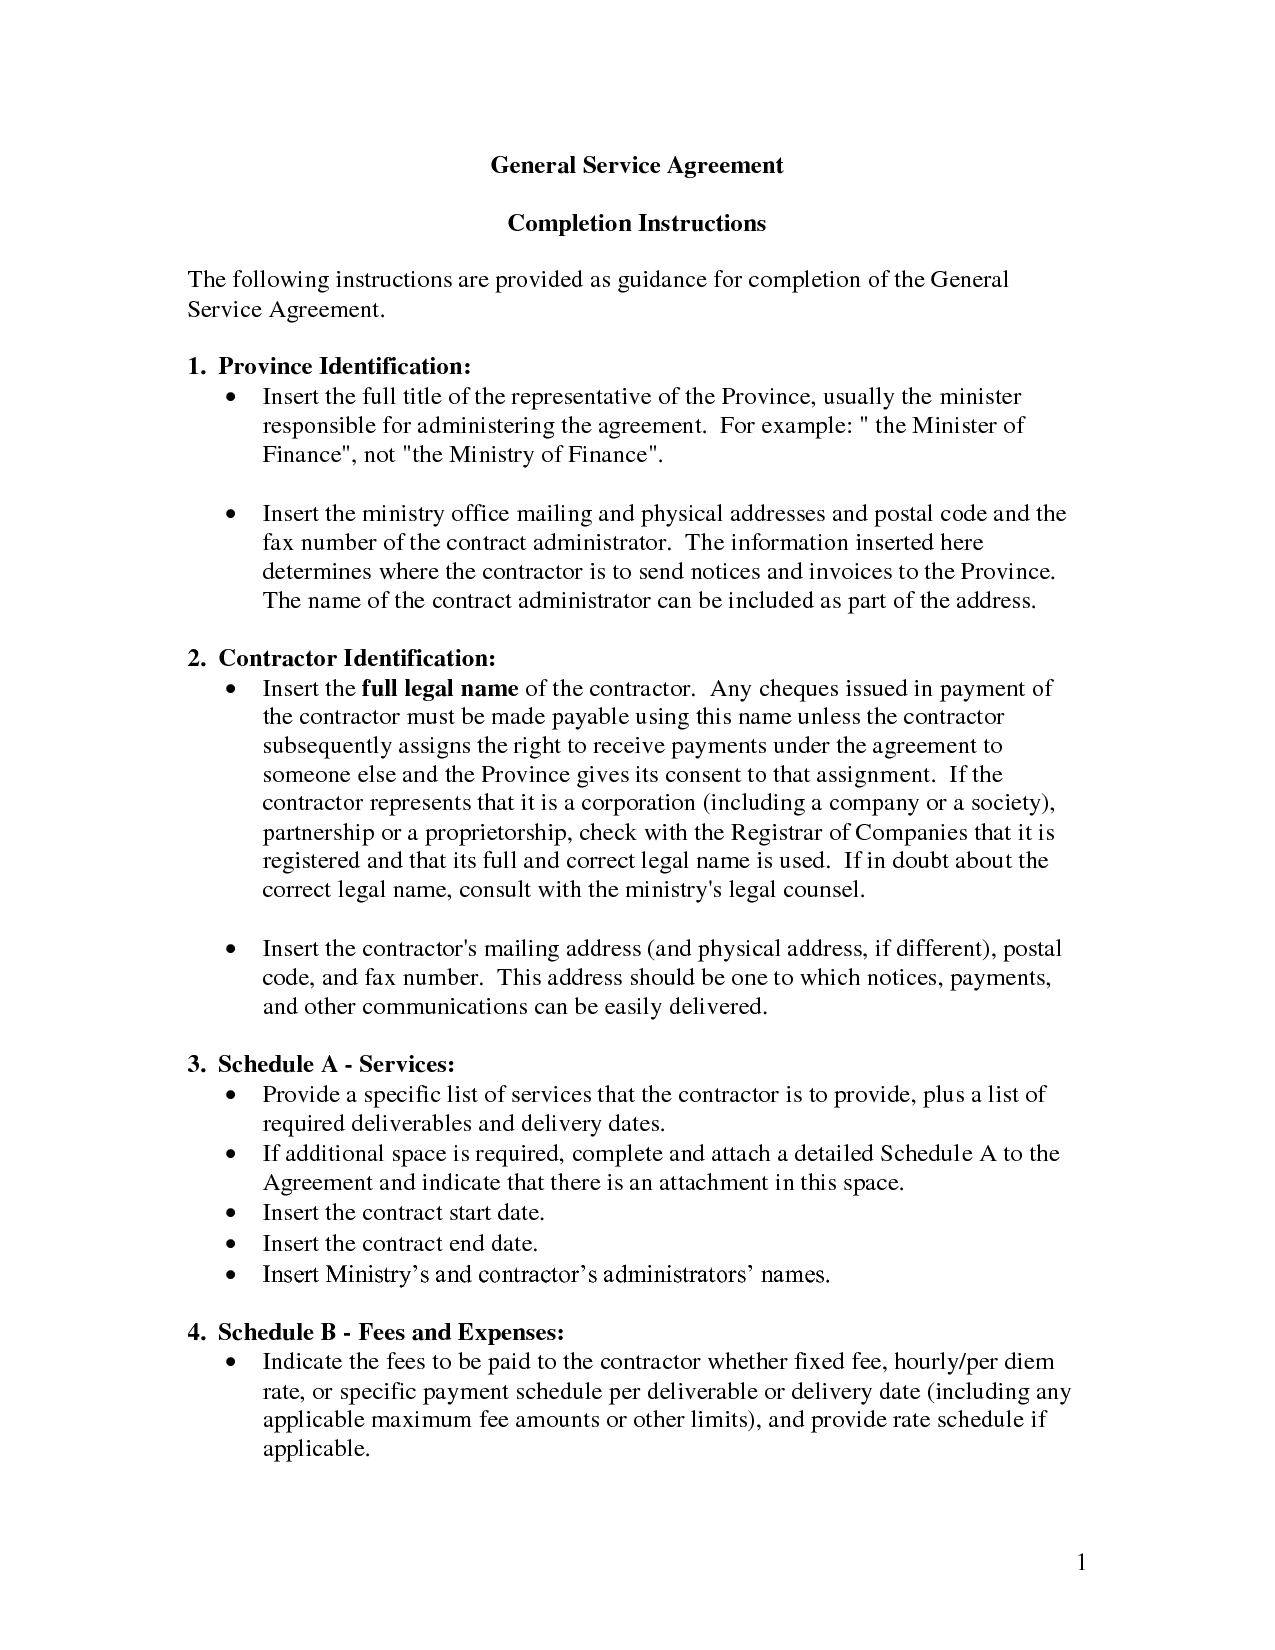 General Service Agreement Template By Banter   General Contract For Services  Template  Contract For Services Template